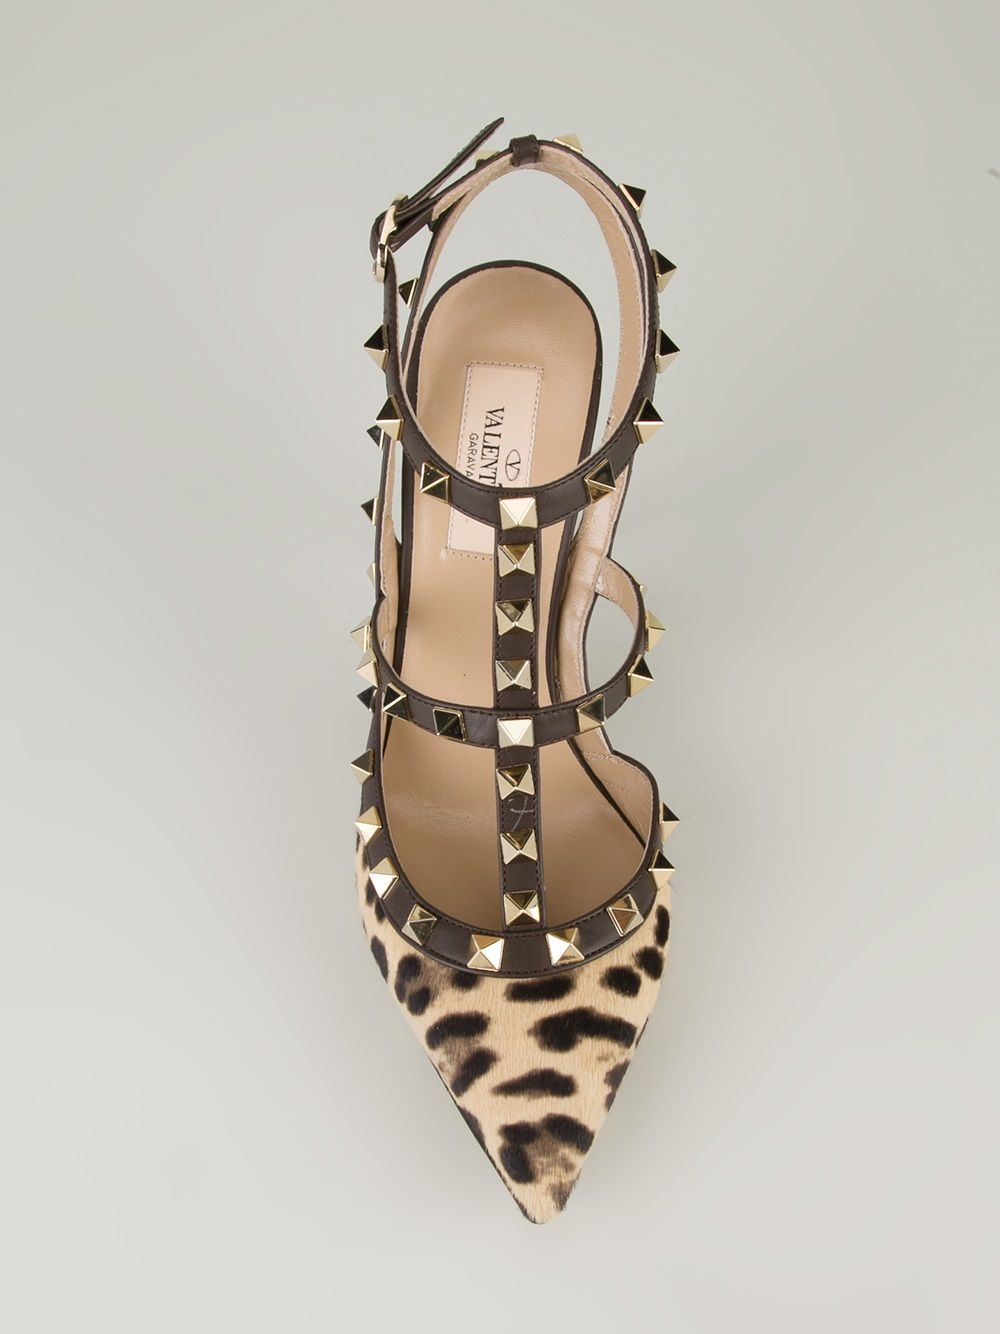 ce1f954bed0ea Valentino 'Rockstud' leopard print pump [Valentino] - $173.60 : Discounted Christian  Louboutin,Jimmy Choo,Valentino,Giuseppe Zanotti and other Brand shoes., ...